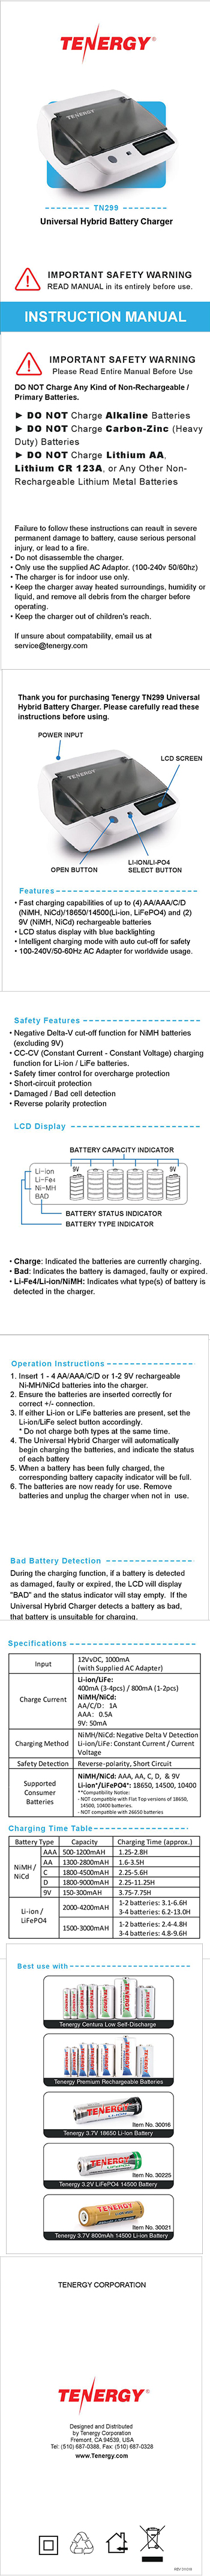 Tenergy Tn299 Hybrid Nimh Nicd Li Ion Lifepo4 Batteries How To Build And Battery Charger Circuit X 1 Power Adapter